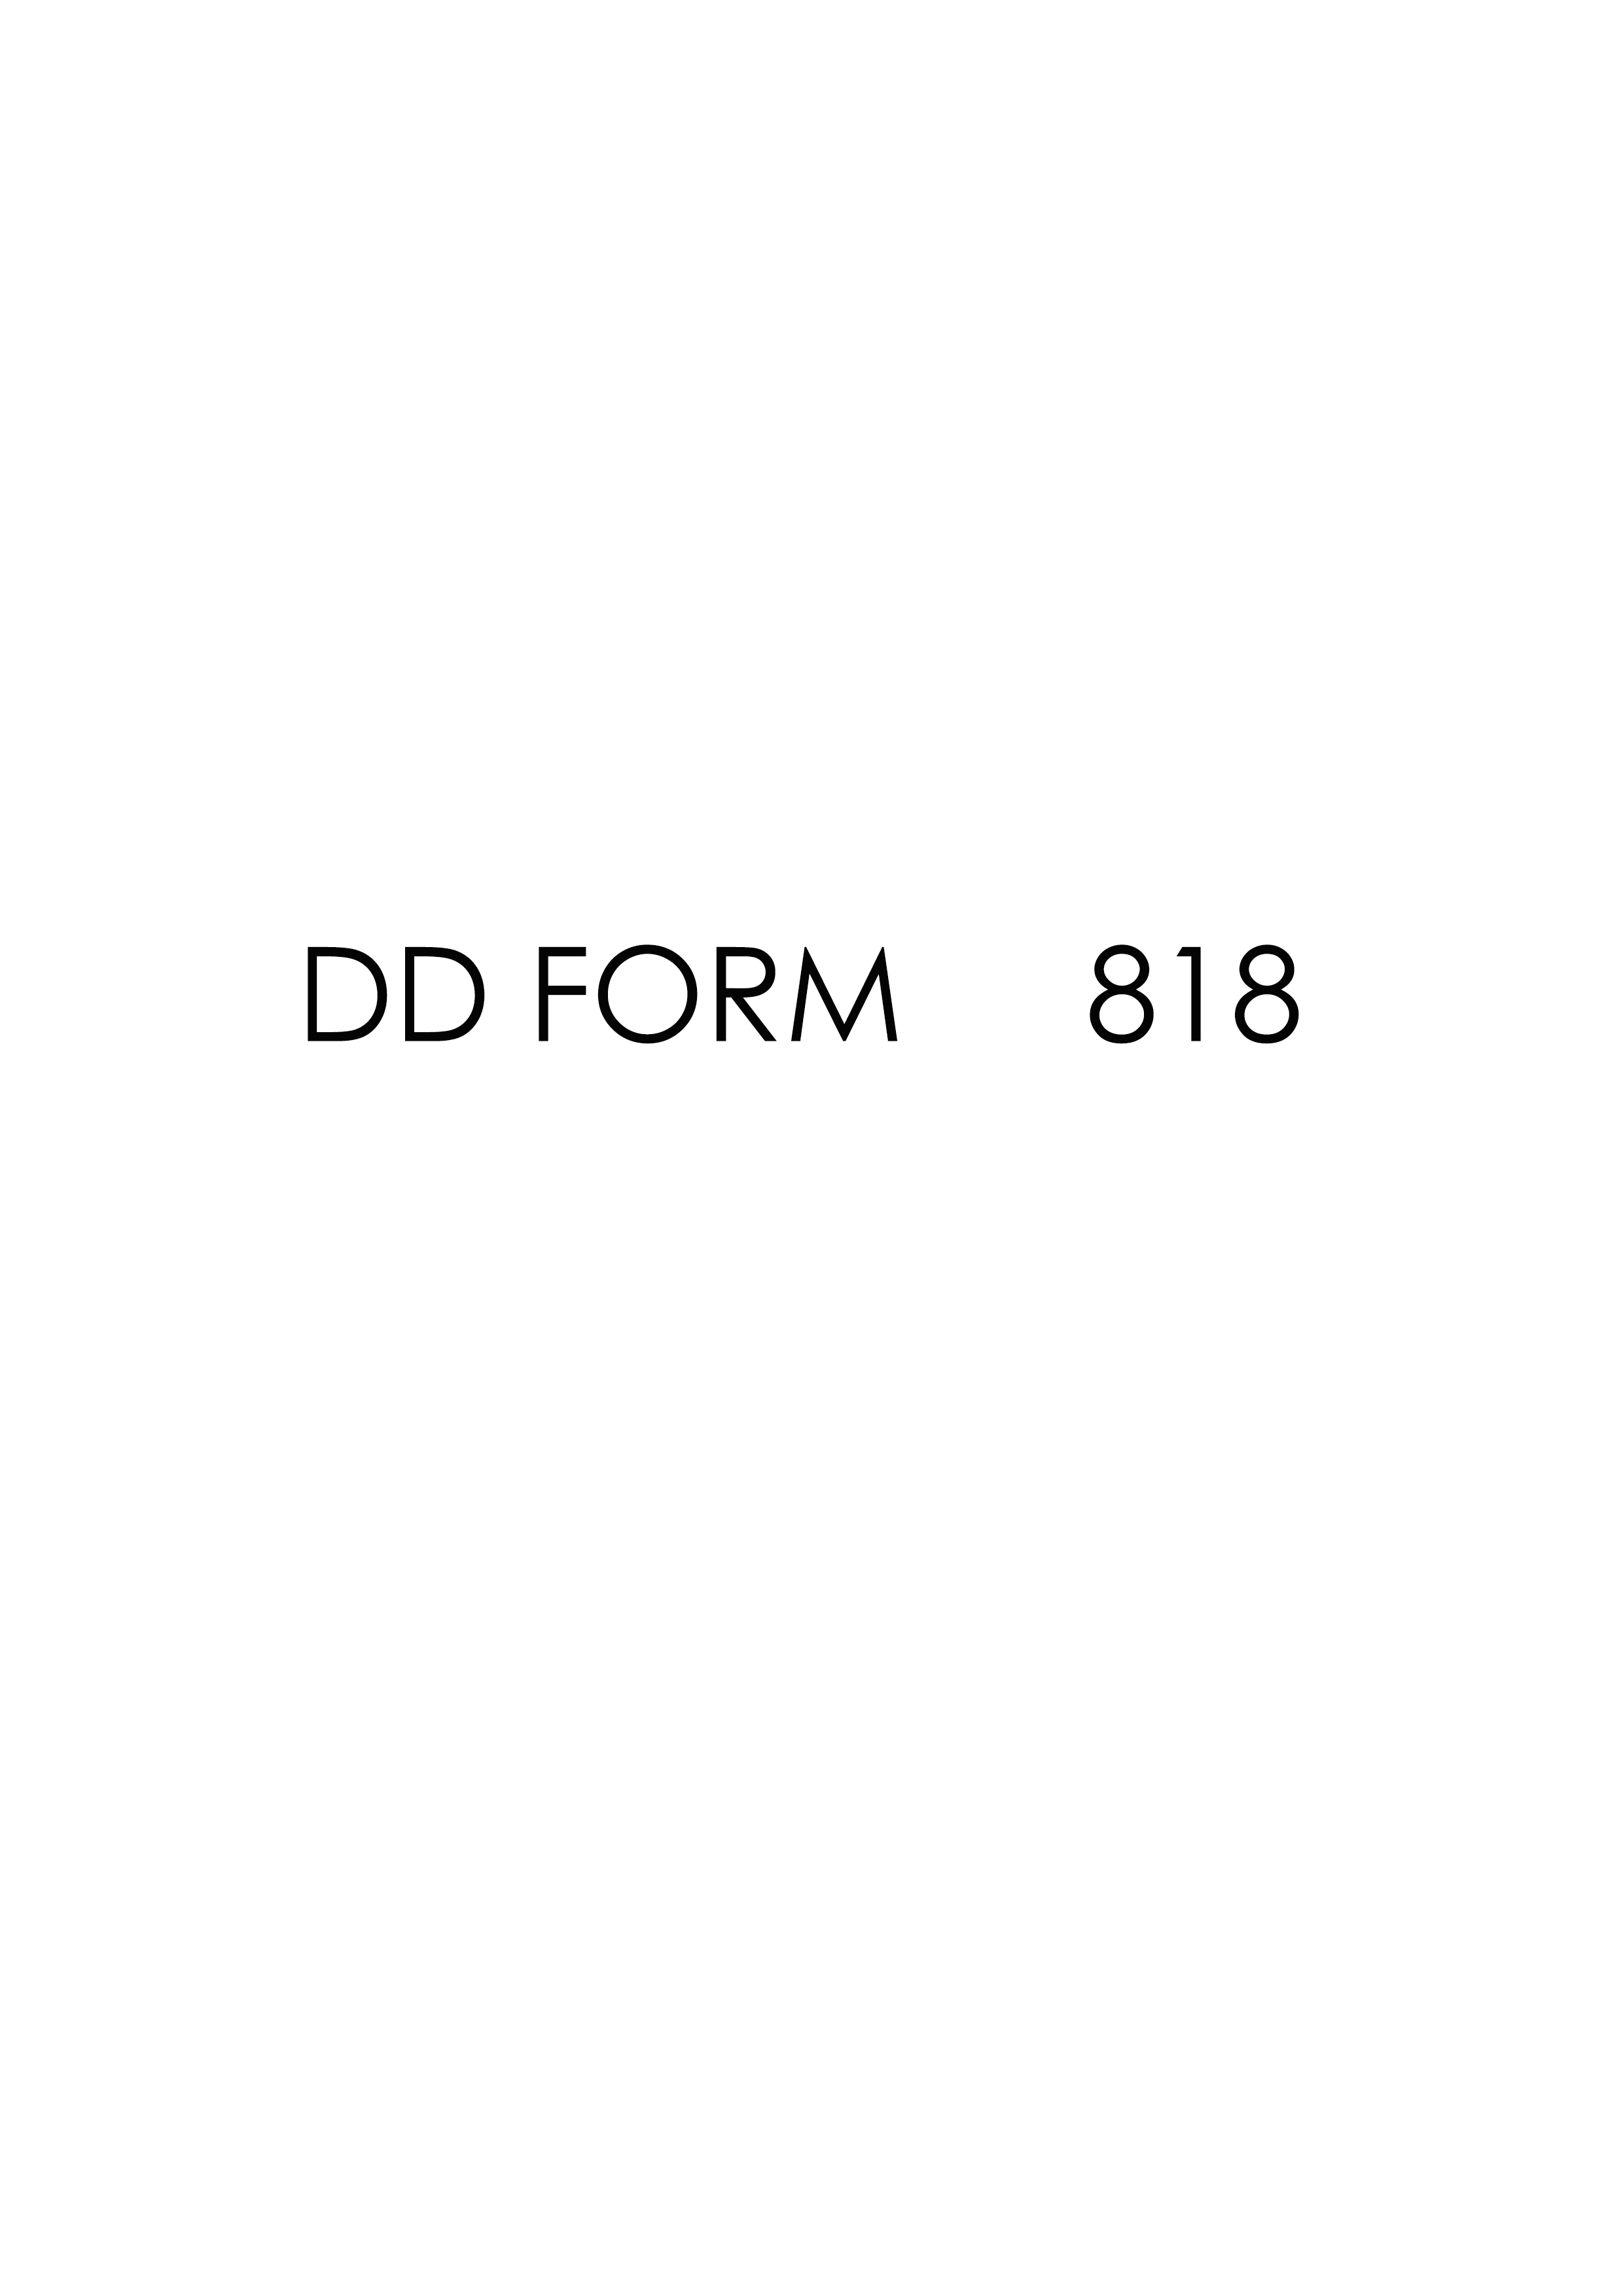 Download Fillable dd Form 818